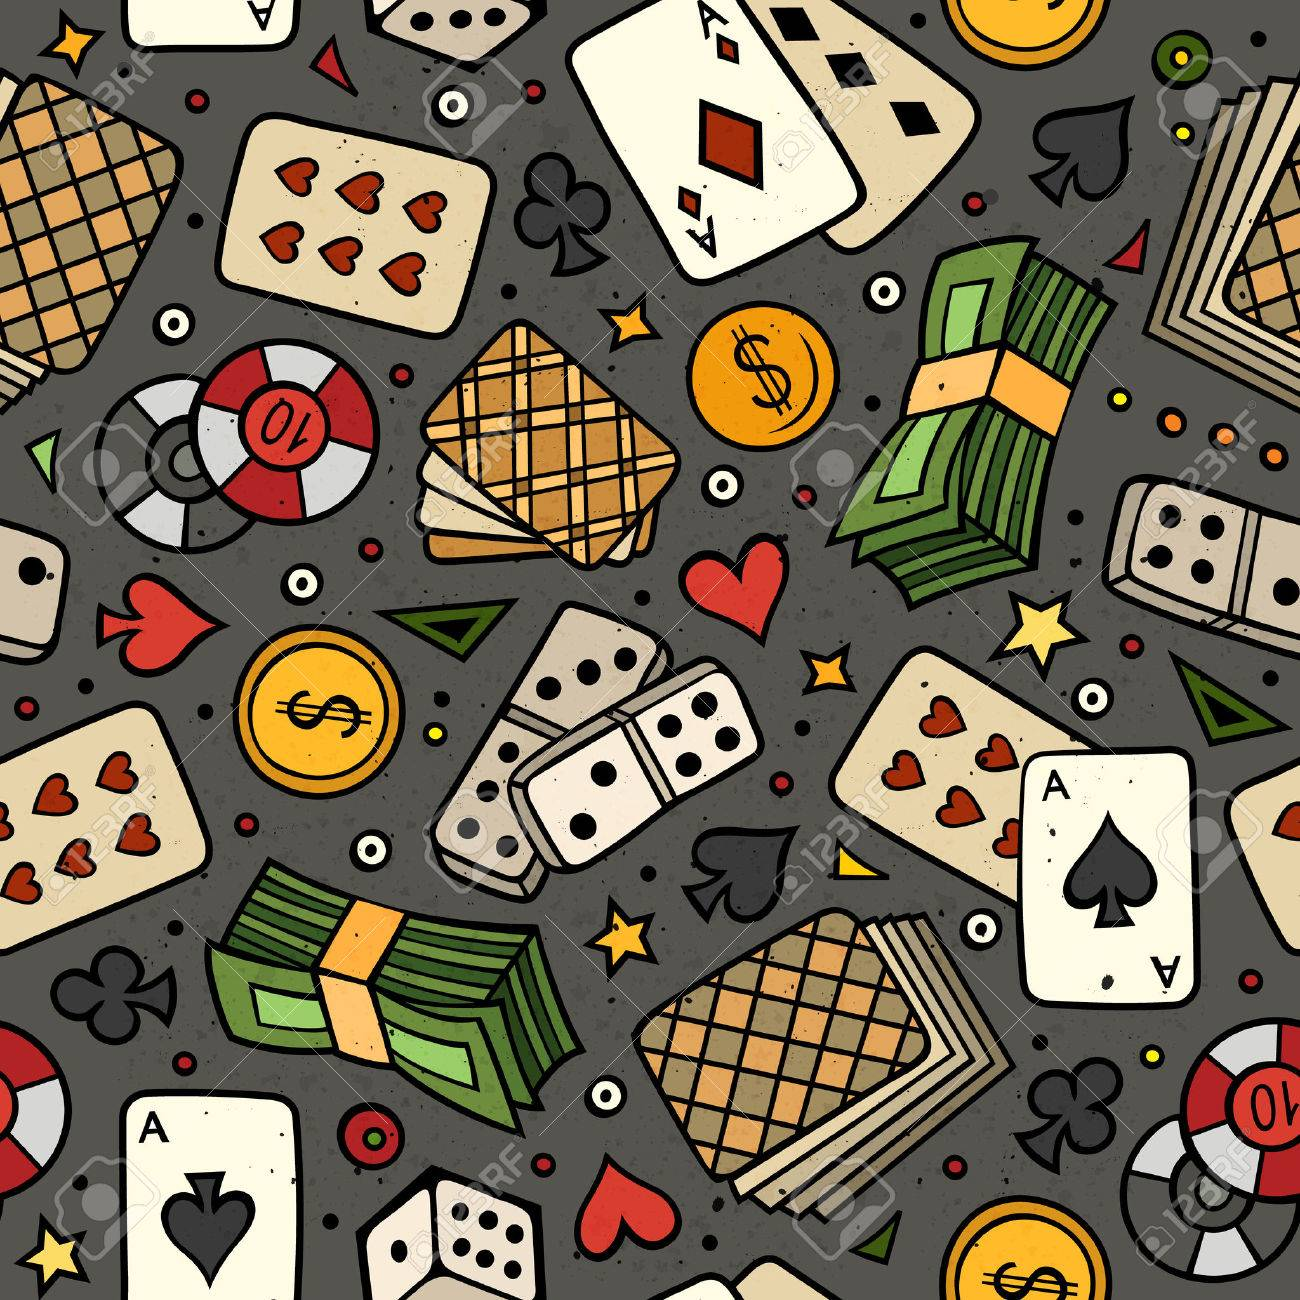 Cartoon hand-drawn casino, games seamless pattern. Lots of symbols, objects and elements. Perfect funny vector background. - 56256492